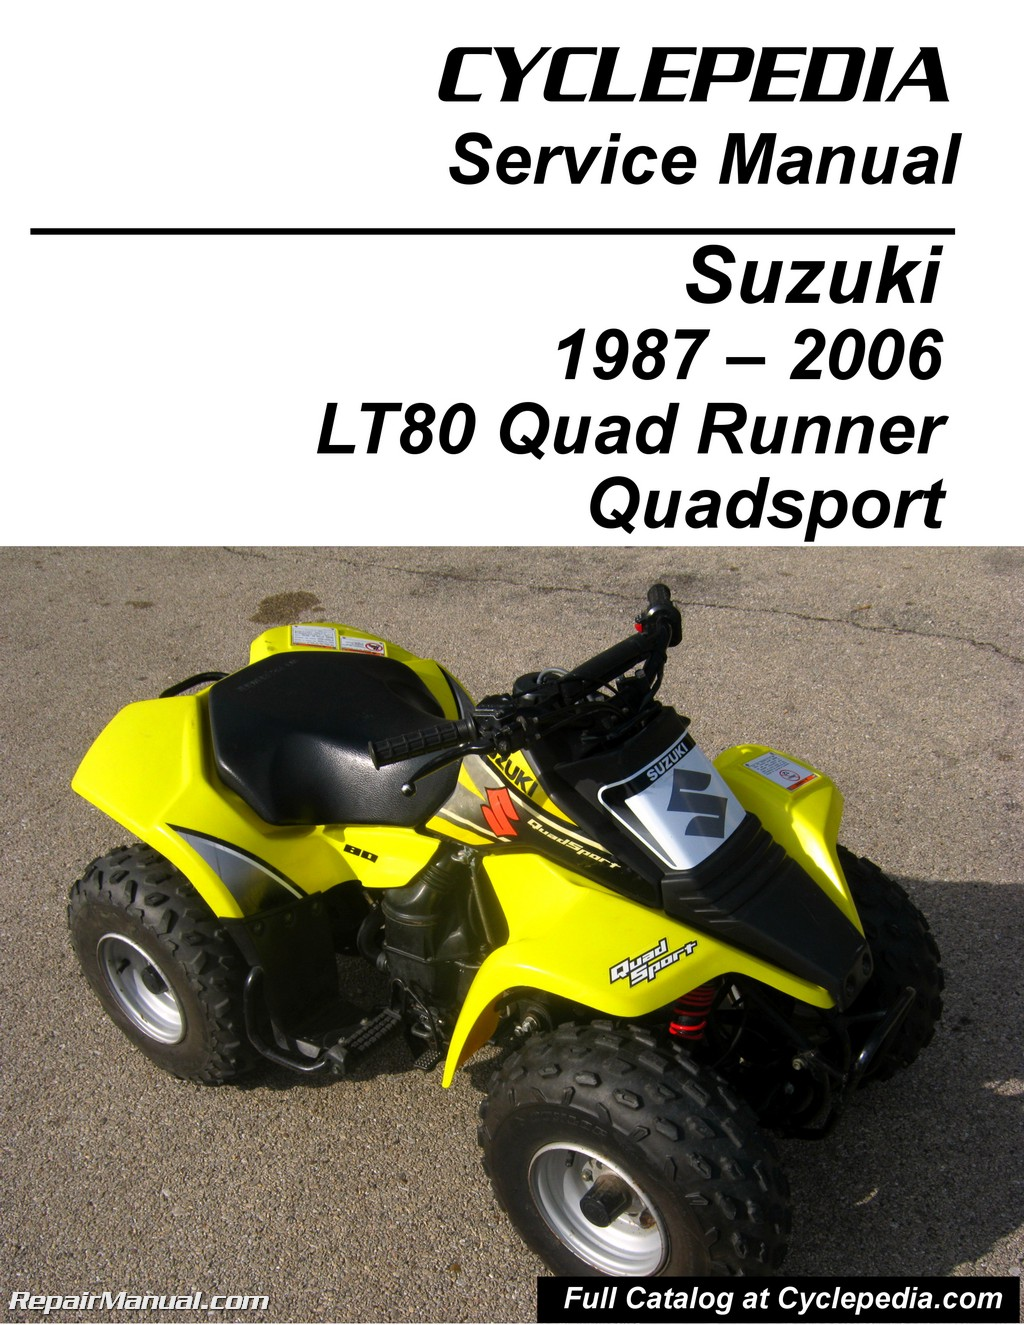 Atv Wiring Diagram Free Image Wiring Diagram Engine Schematic